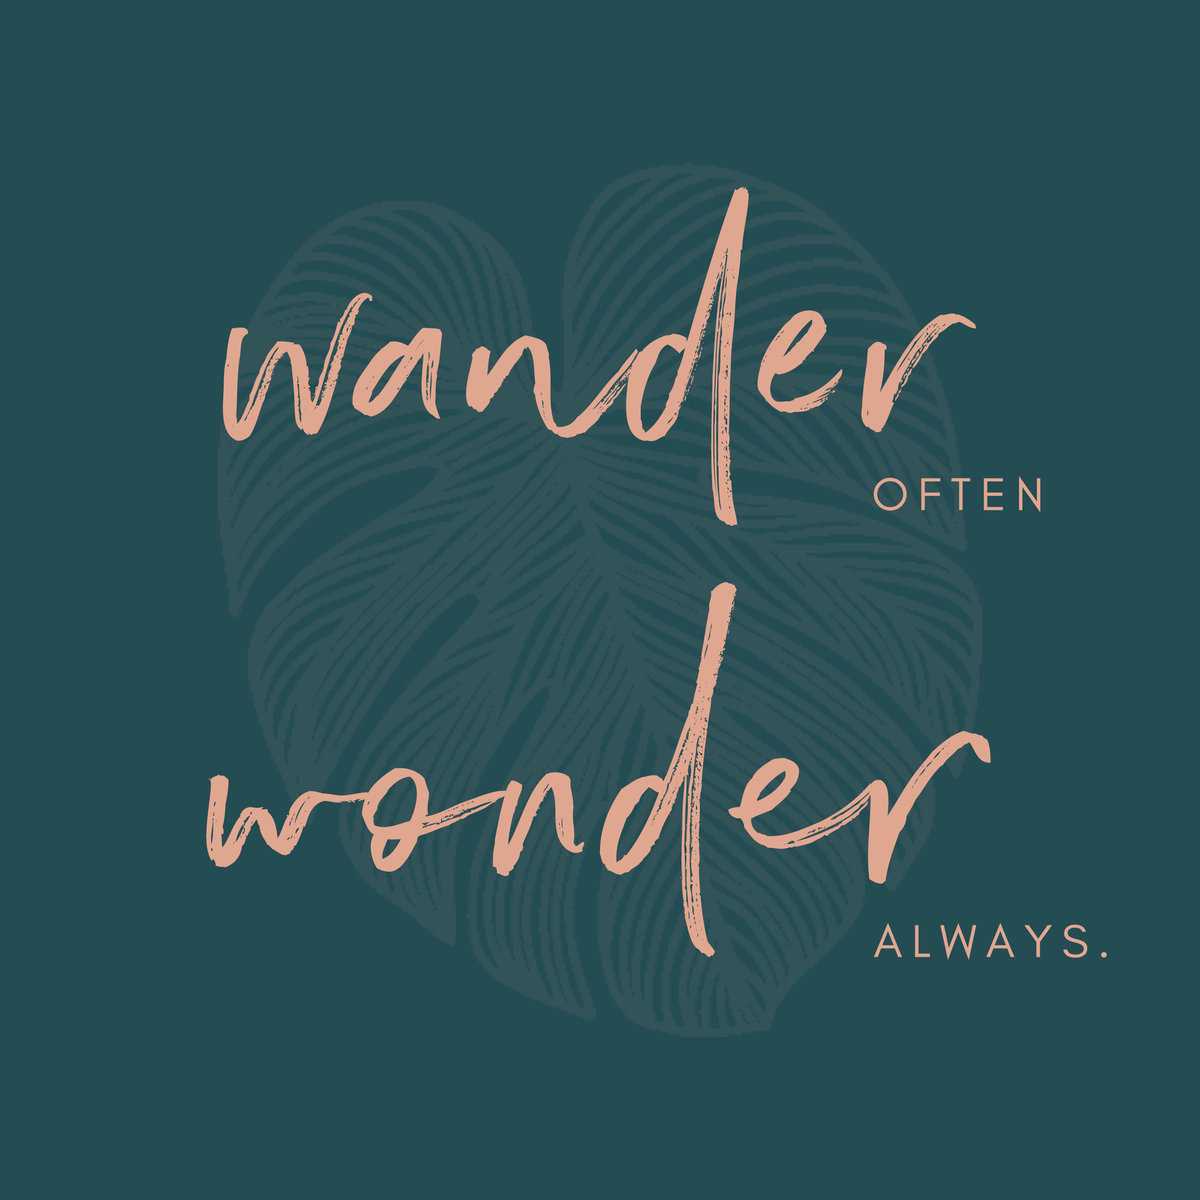 Wander Often Wonder Always